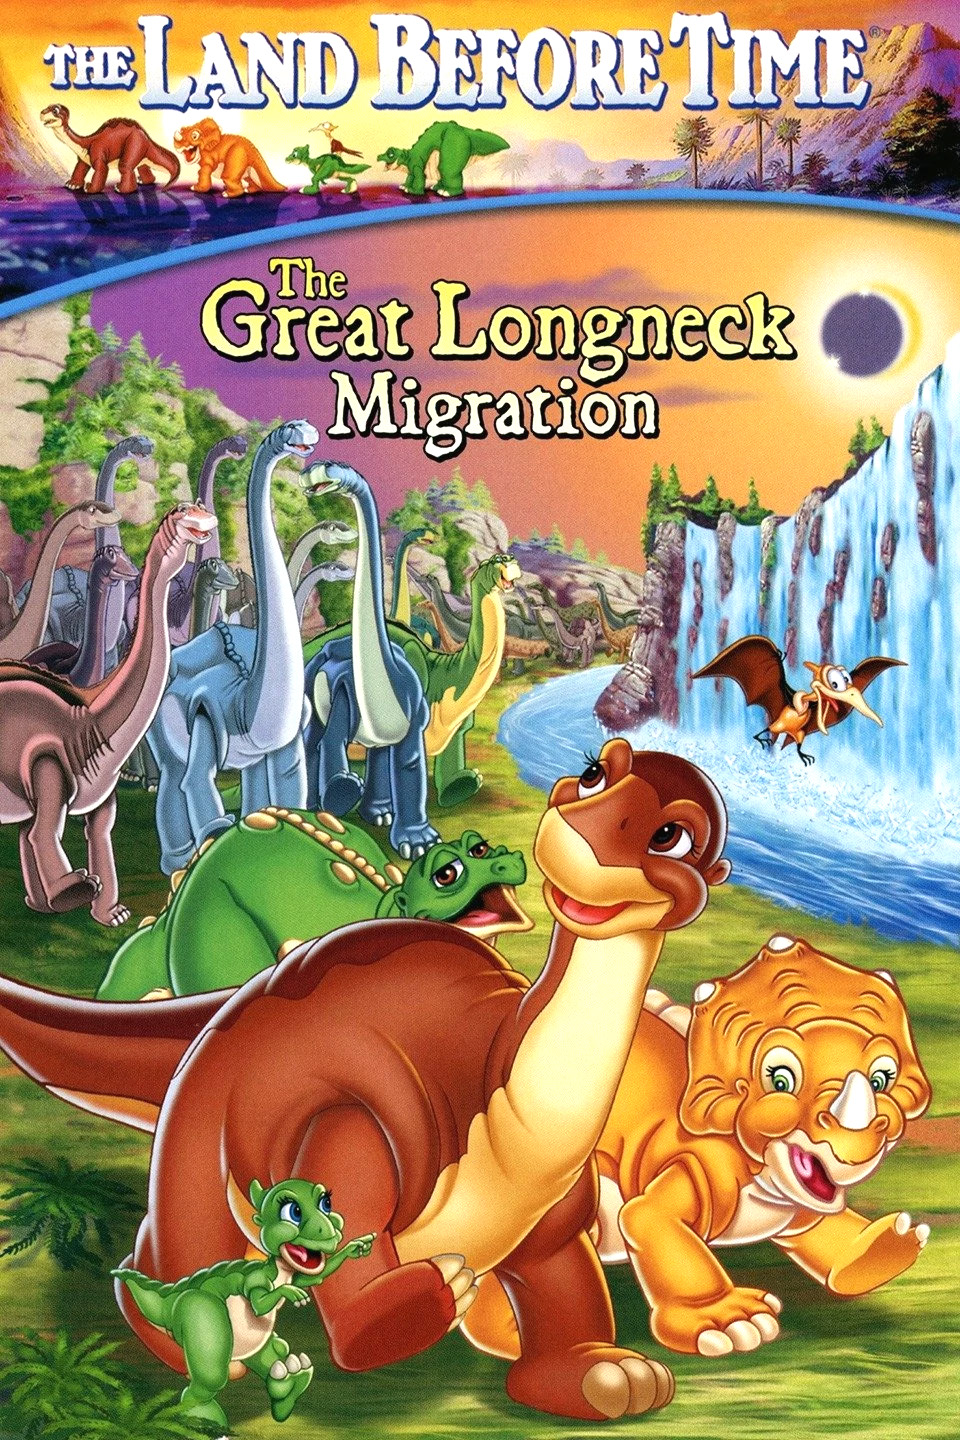 The Land Before Time X: The Great Longneck Migration | Land Before Time Wiki | FANDOM powered by ...